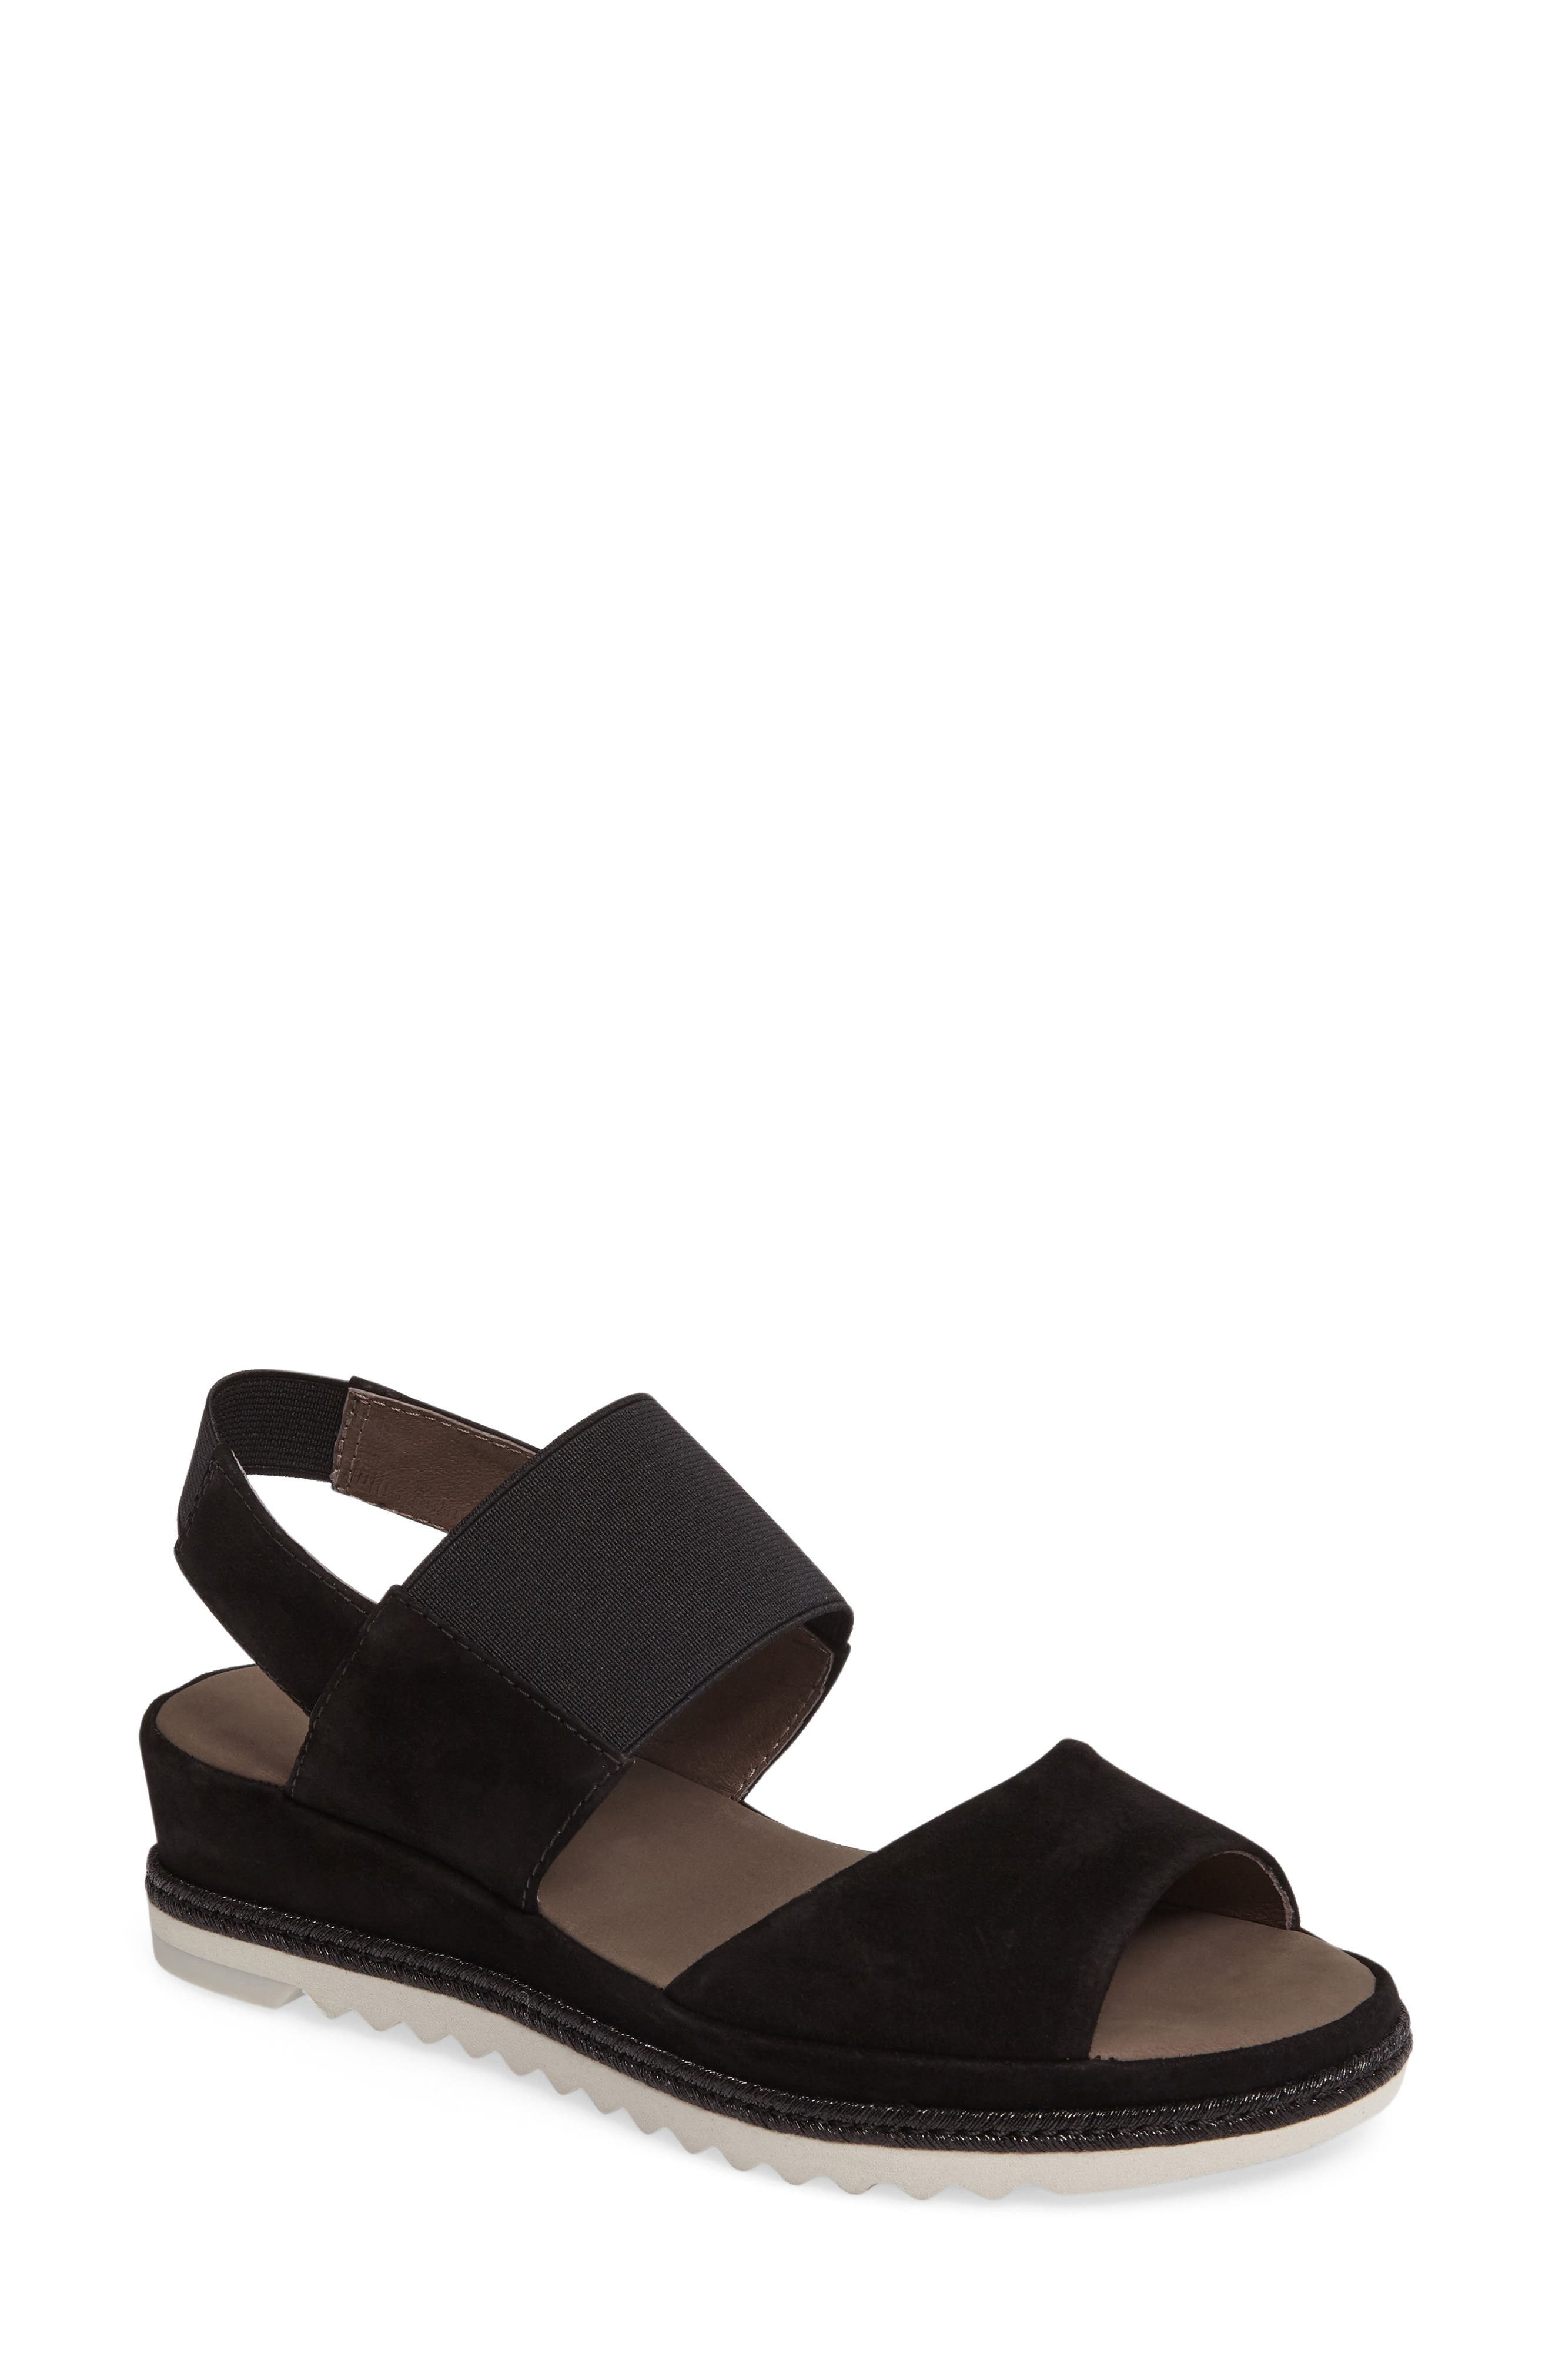 Low Wedge Sandal,                         Main,                         color, 001